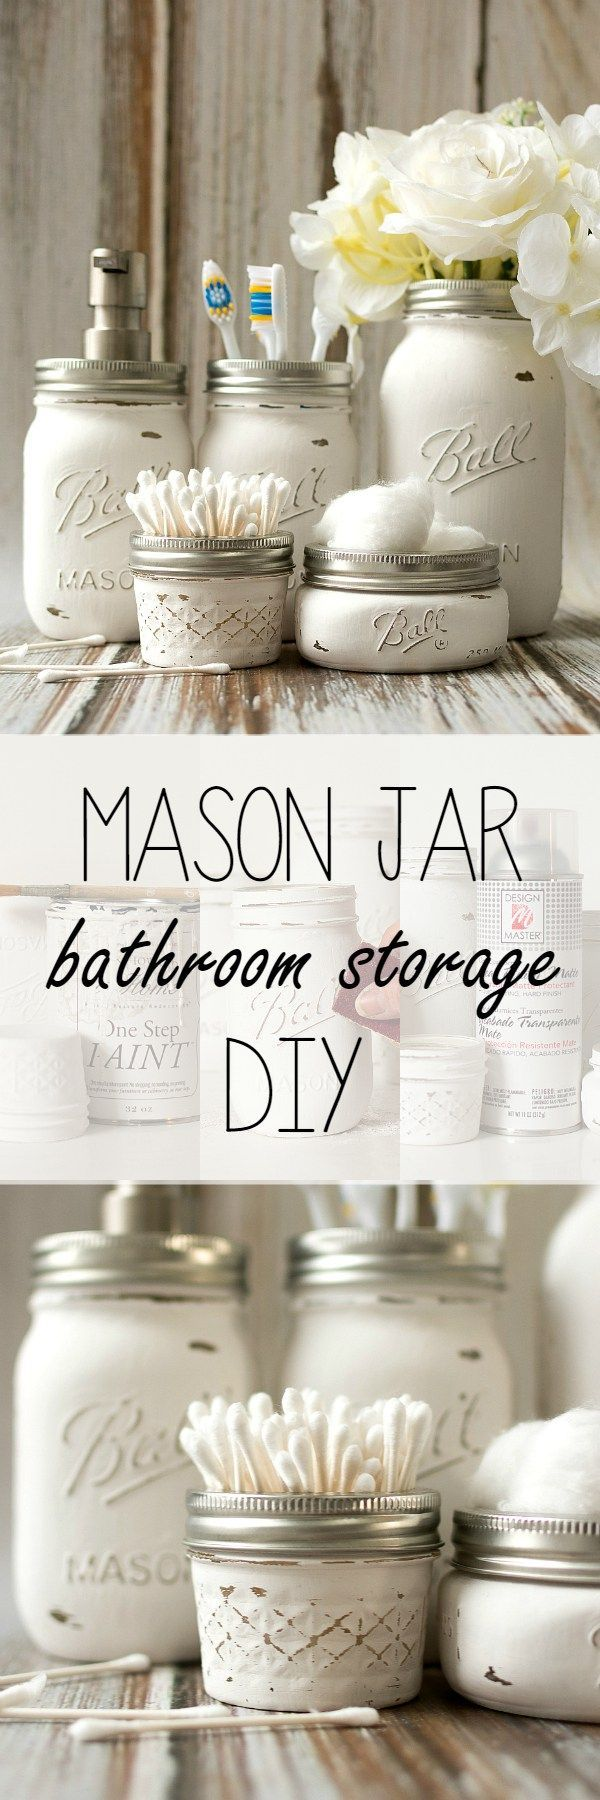 DIY Bathroom Organizer Ideas - Do it Yourself Pretty Distressed Mason Jar Bathroom Organizers Craft Project Tutorial via Mason Jar Crafts Love